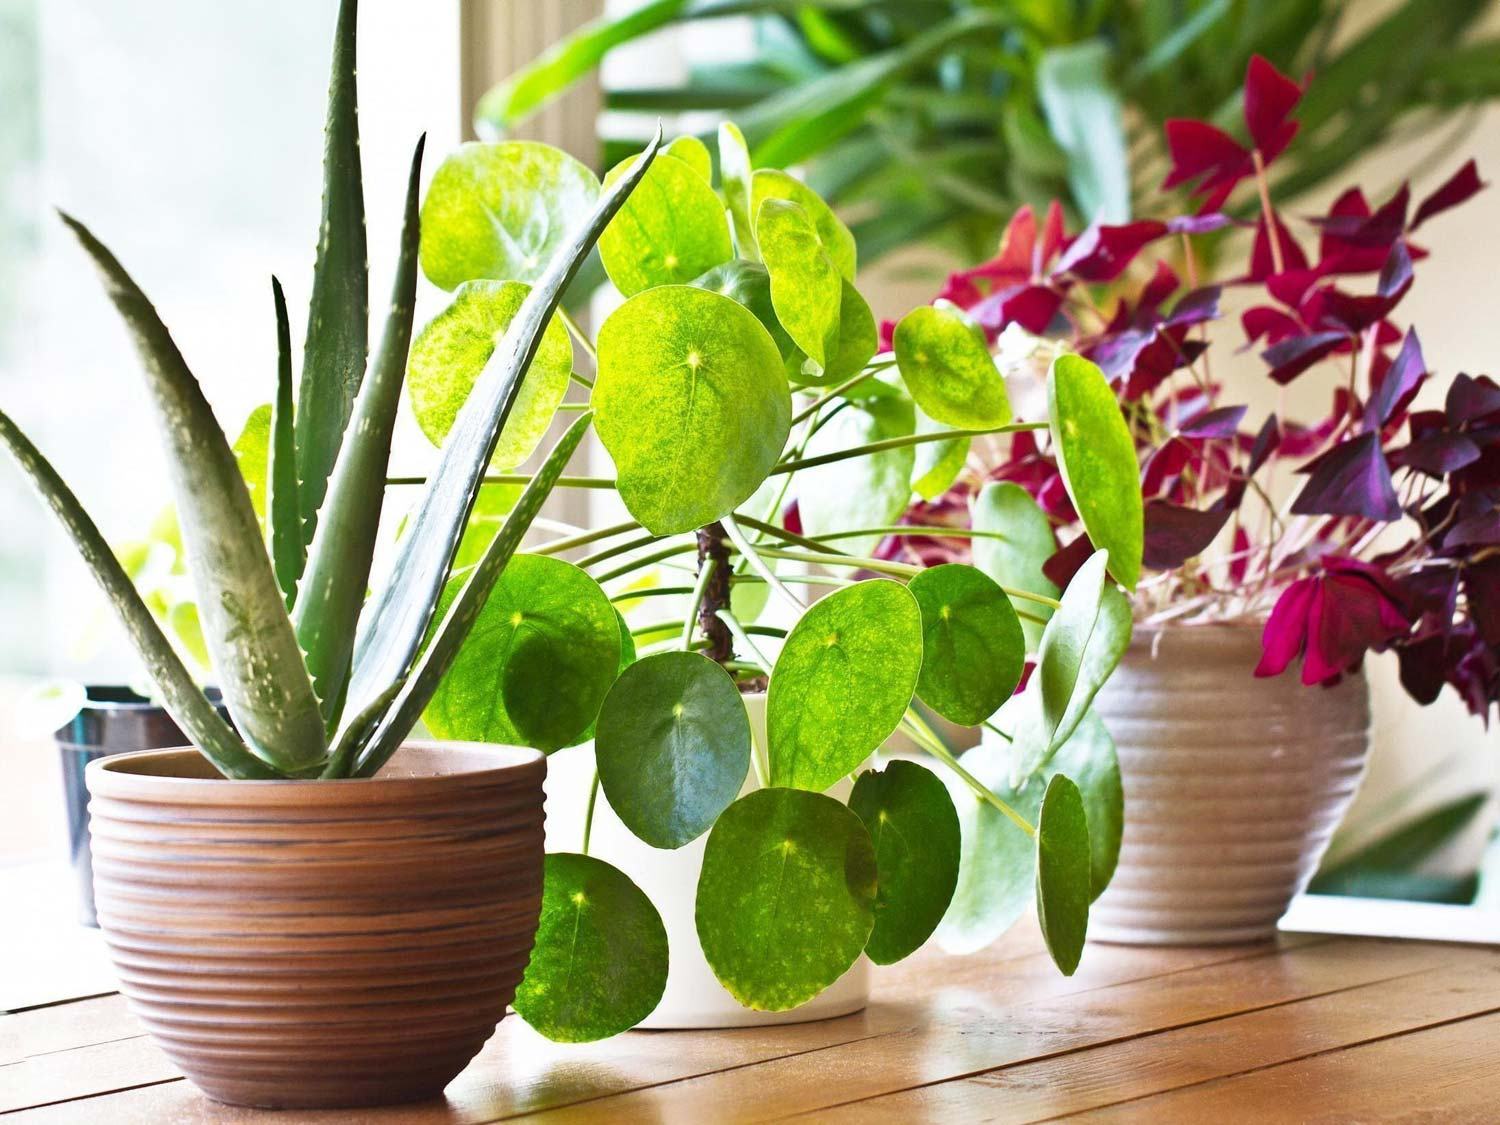 Houseplants 101: What Kind To Get And Where To Put Them